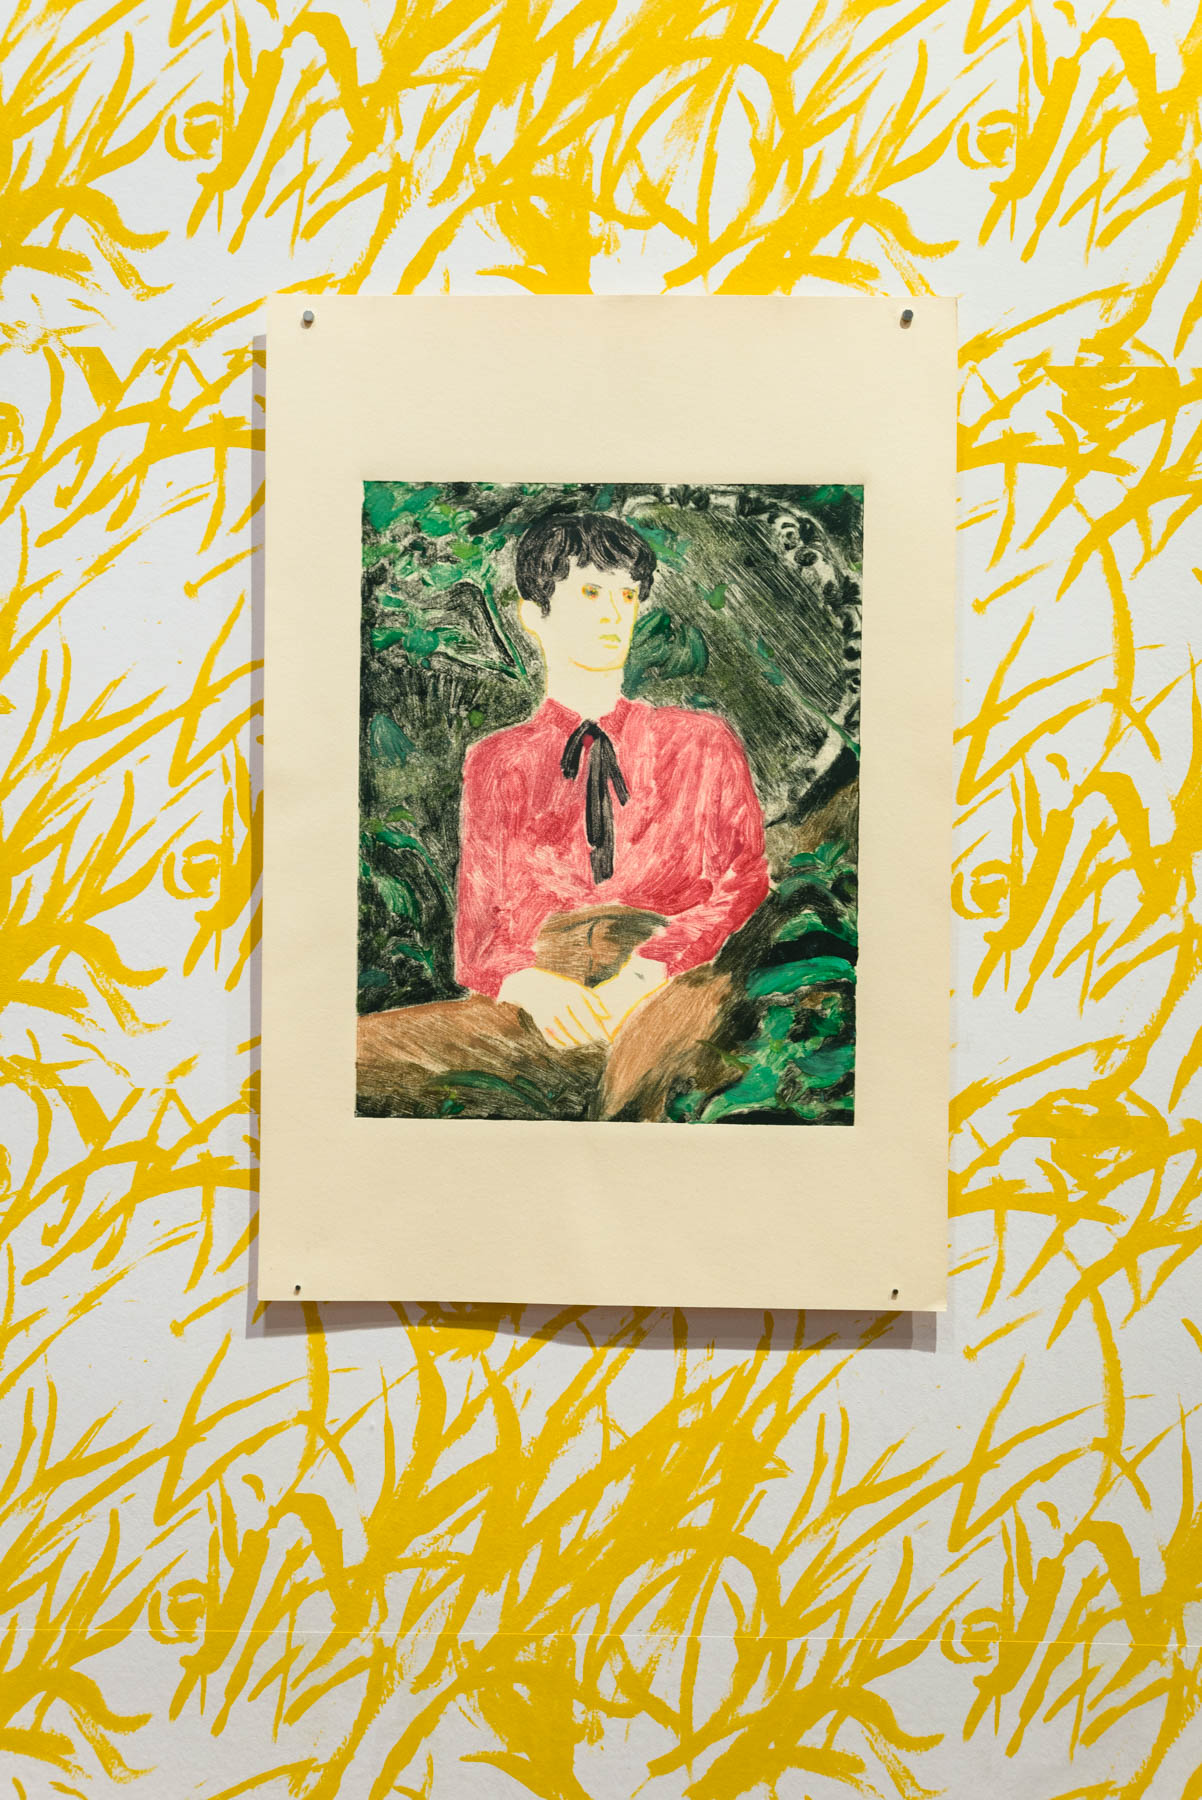 11-Ron Siu. The Middle Child, 2020. Monotype on paper over hand-printed wallpaper, image size 11 x 14 inches, paper size 15 x 22 inches